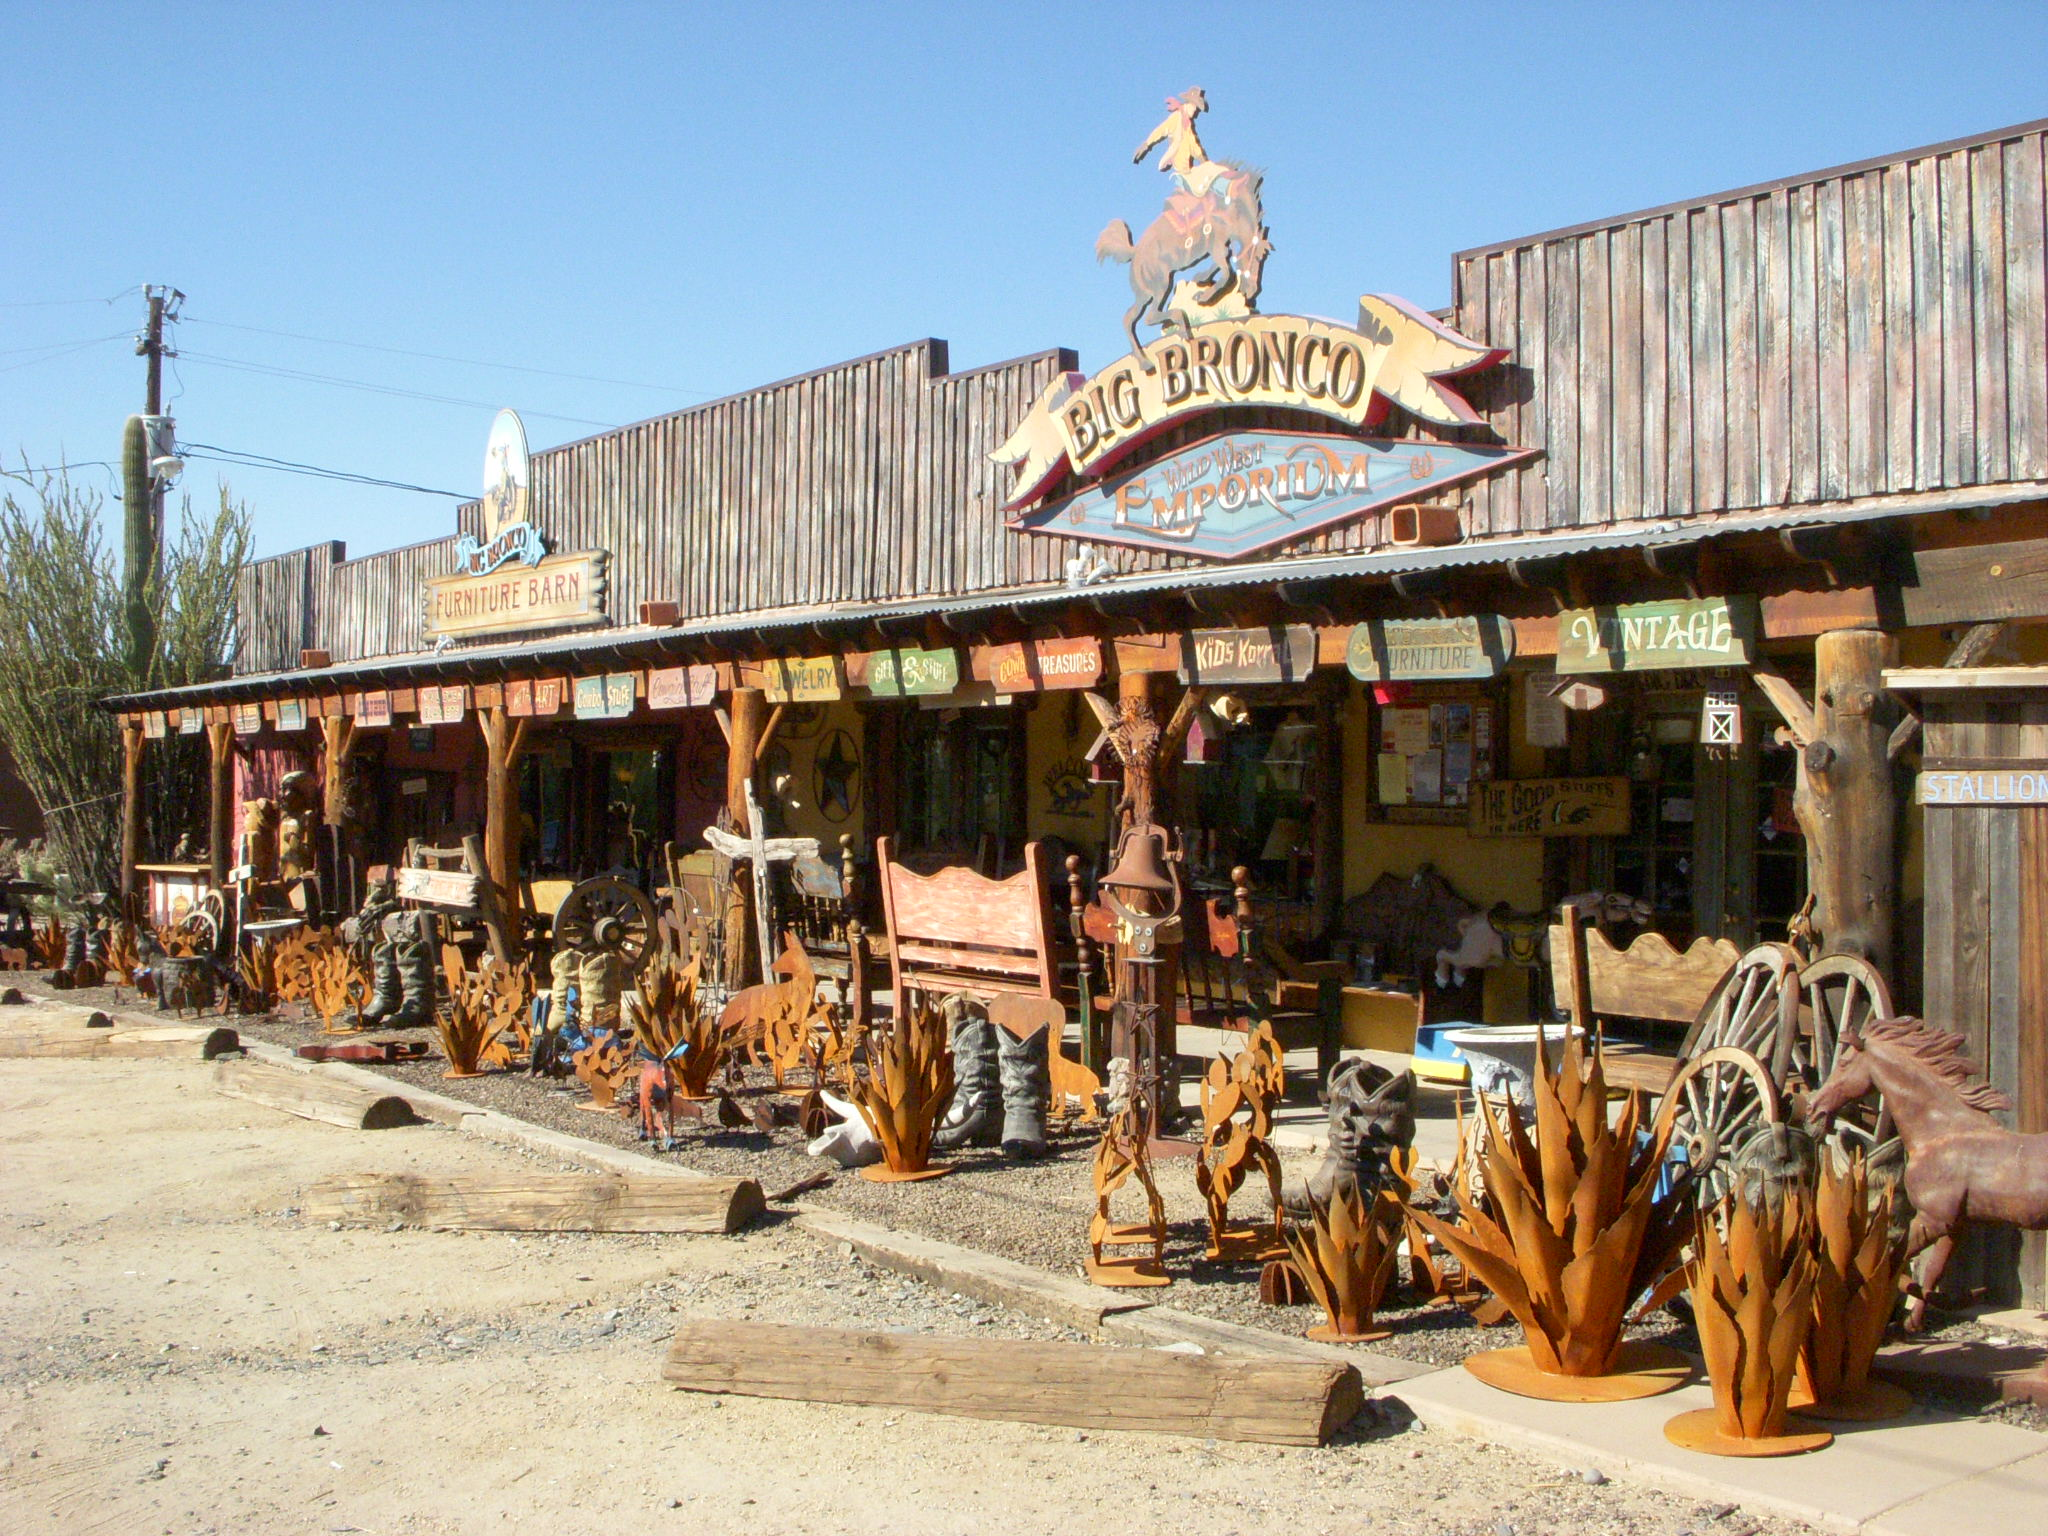 An outside view of the Big Bronco shop in Cave Creek with metal cacti and Western-themed artwork displayed out front.